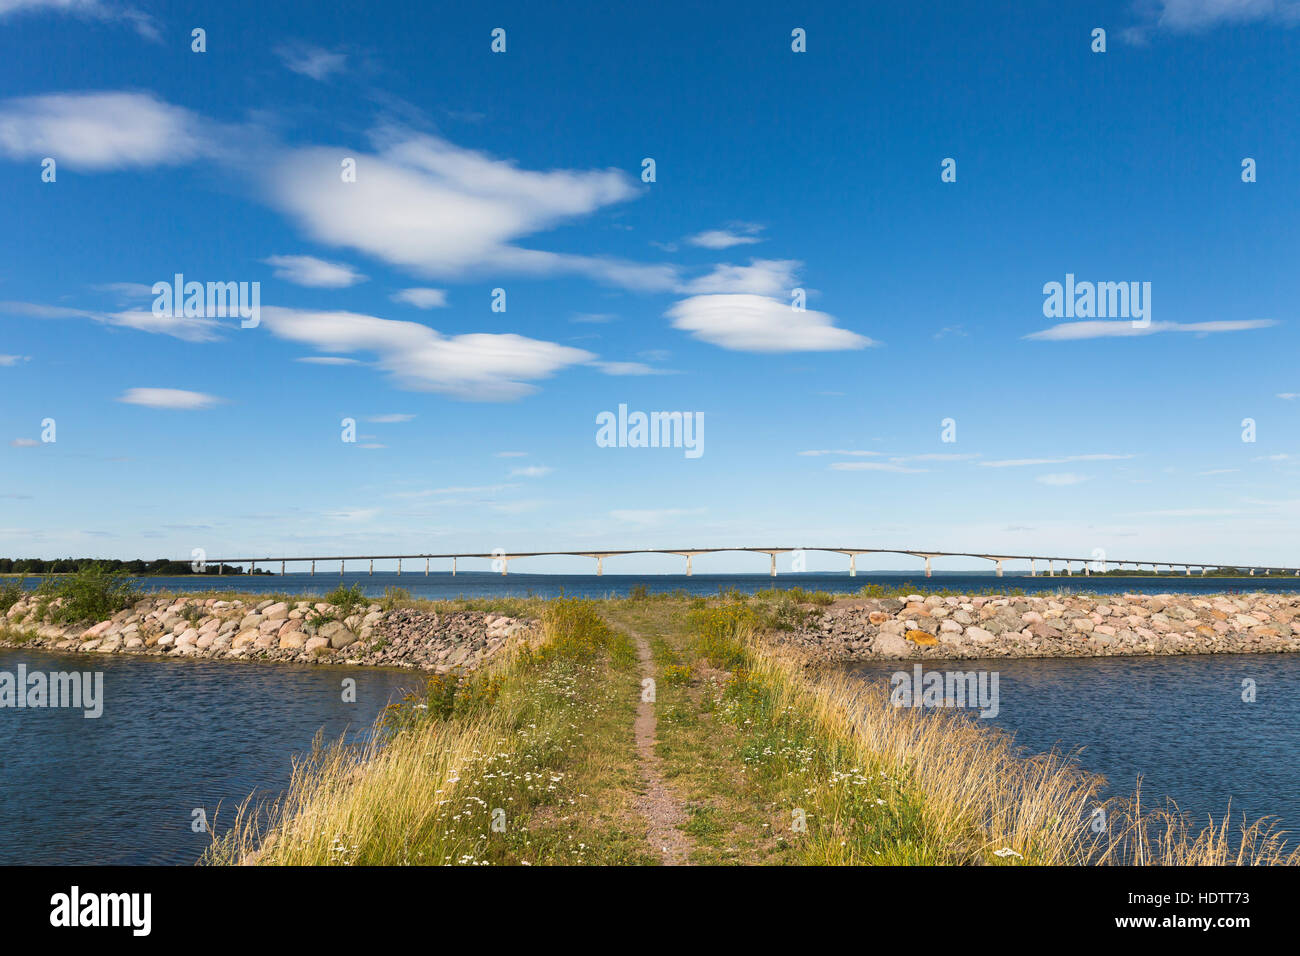 The Oland bridge in Sweden. The bridge is one of the longest bridges in Europe and is connecting island Oland and - Stock Image